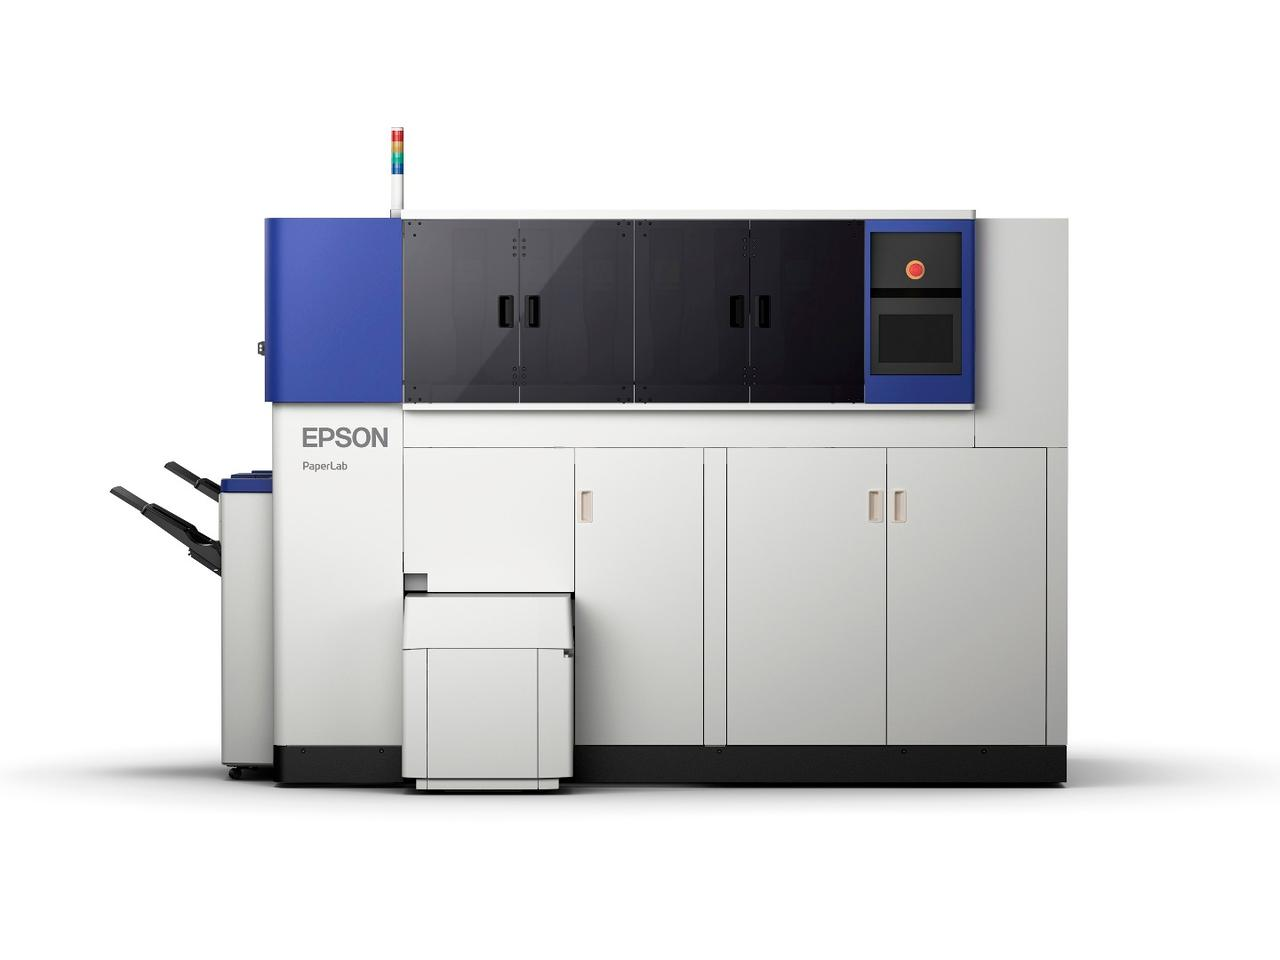 Epson's PaperLab probably won't slot in discreetly beside the office watercooler